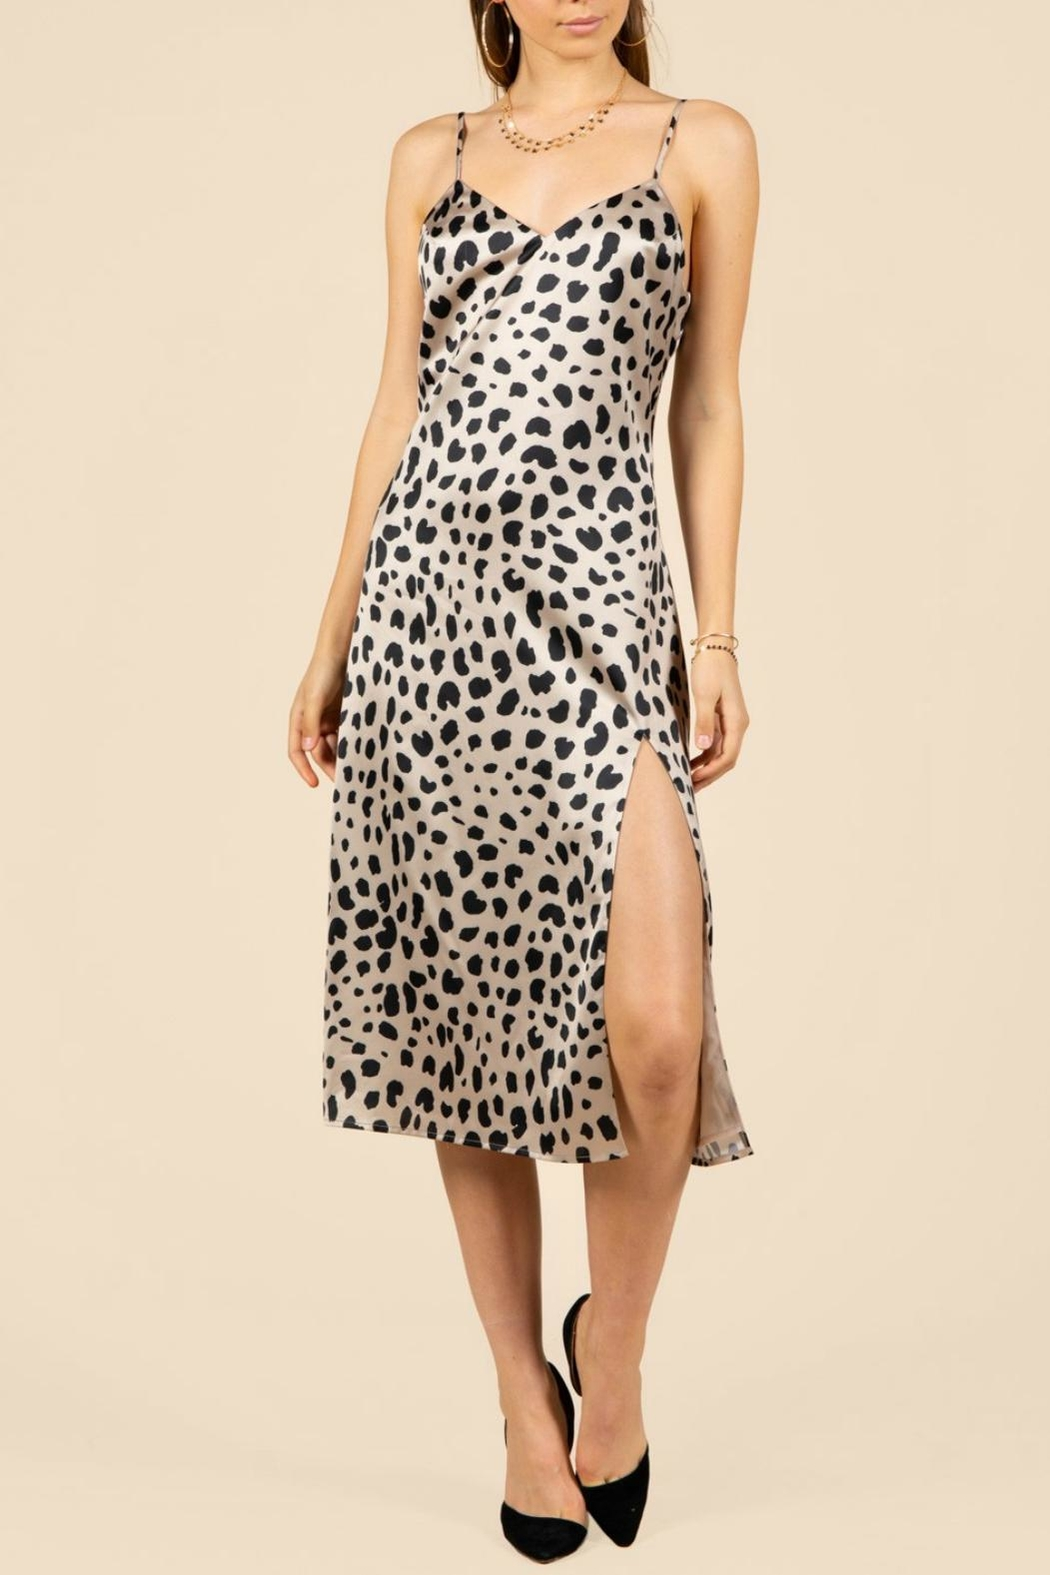 Pretty Little Things Leopard Slip Dress - Front Cropped Image